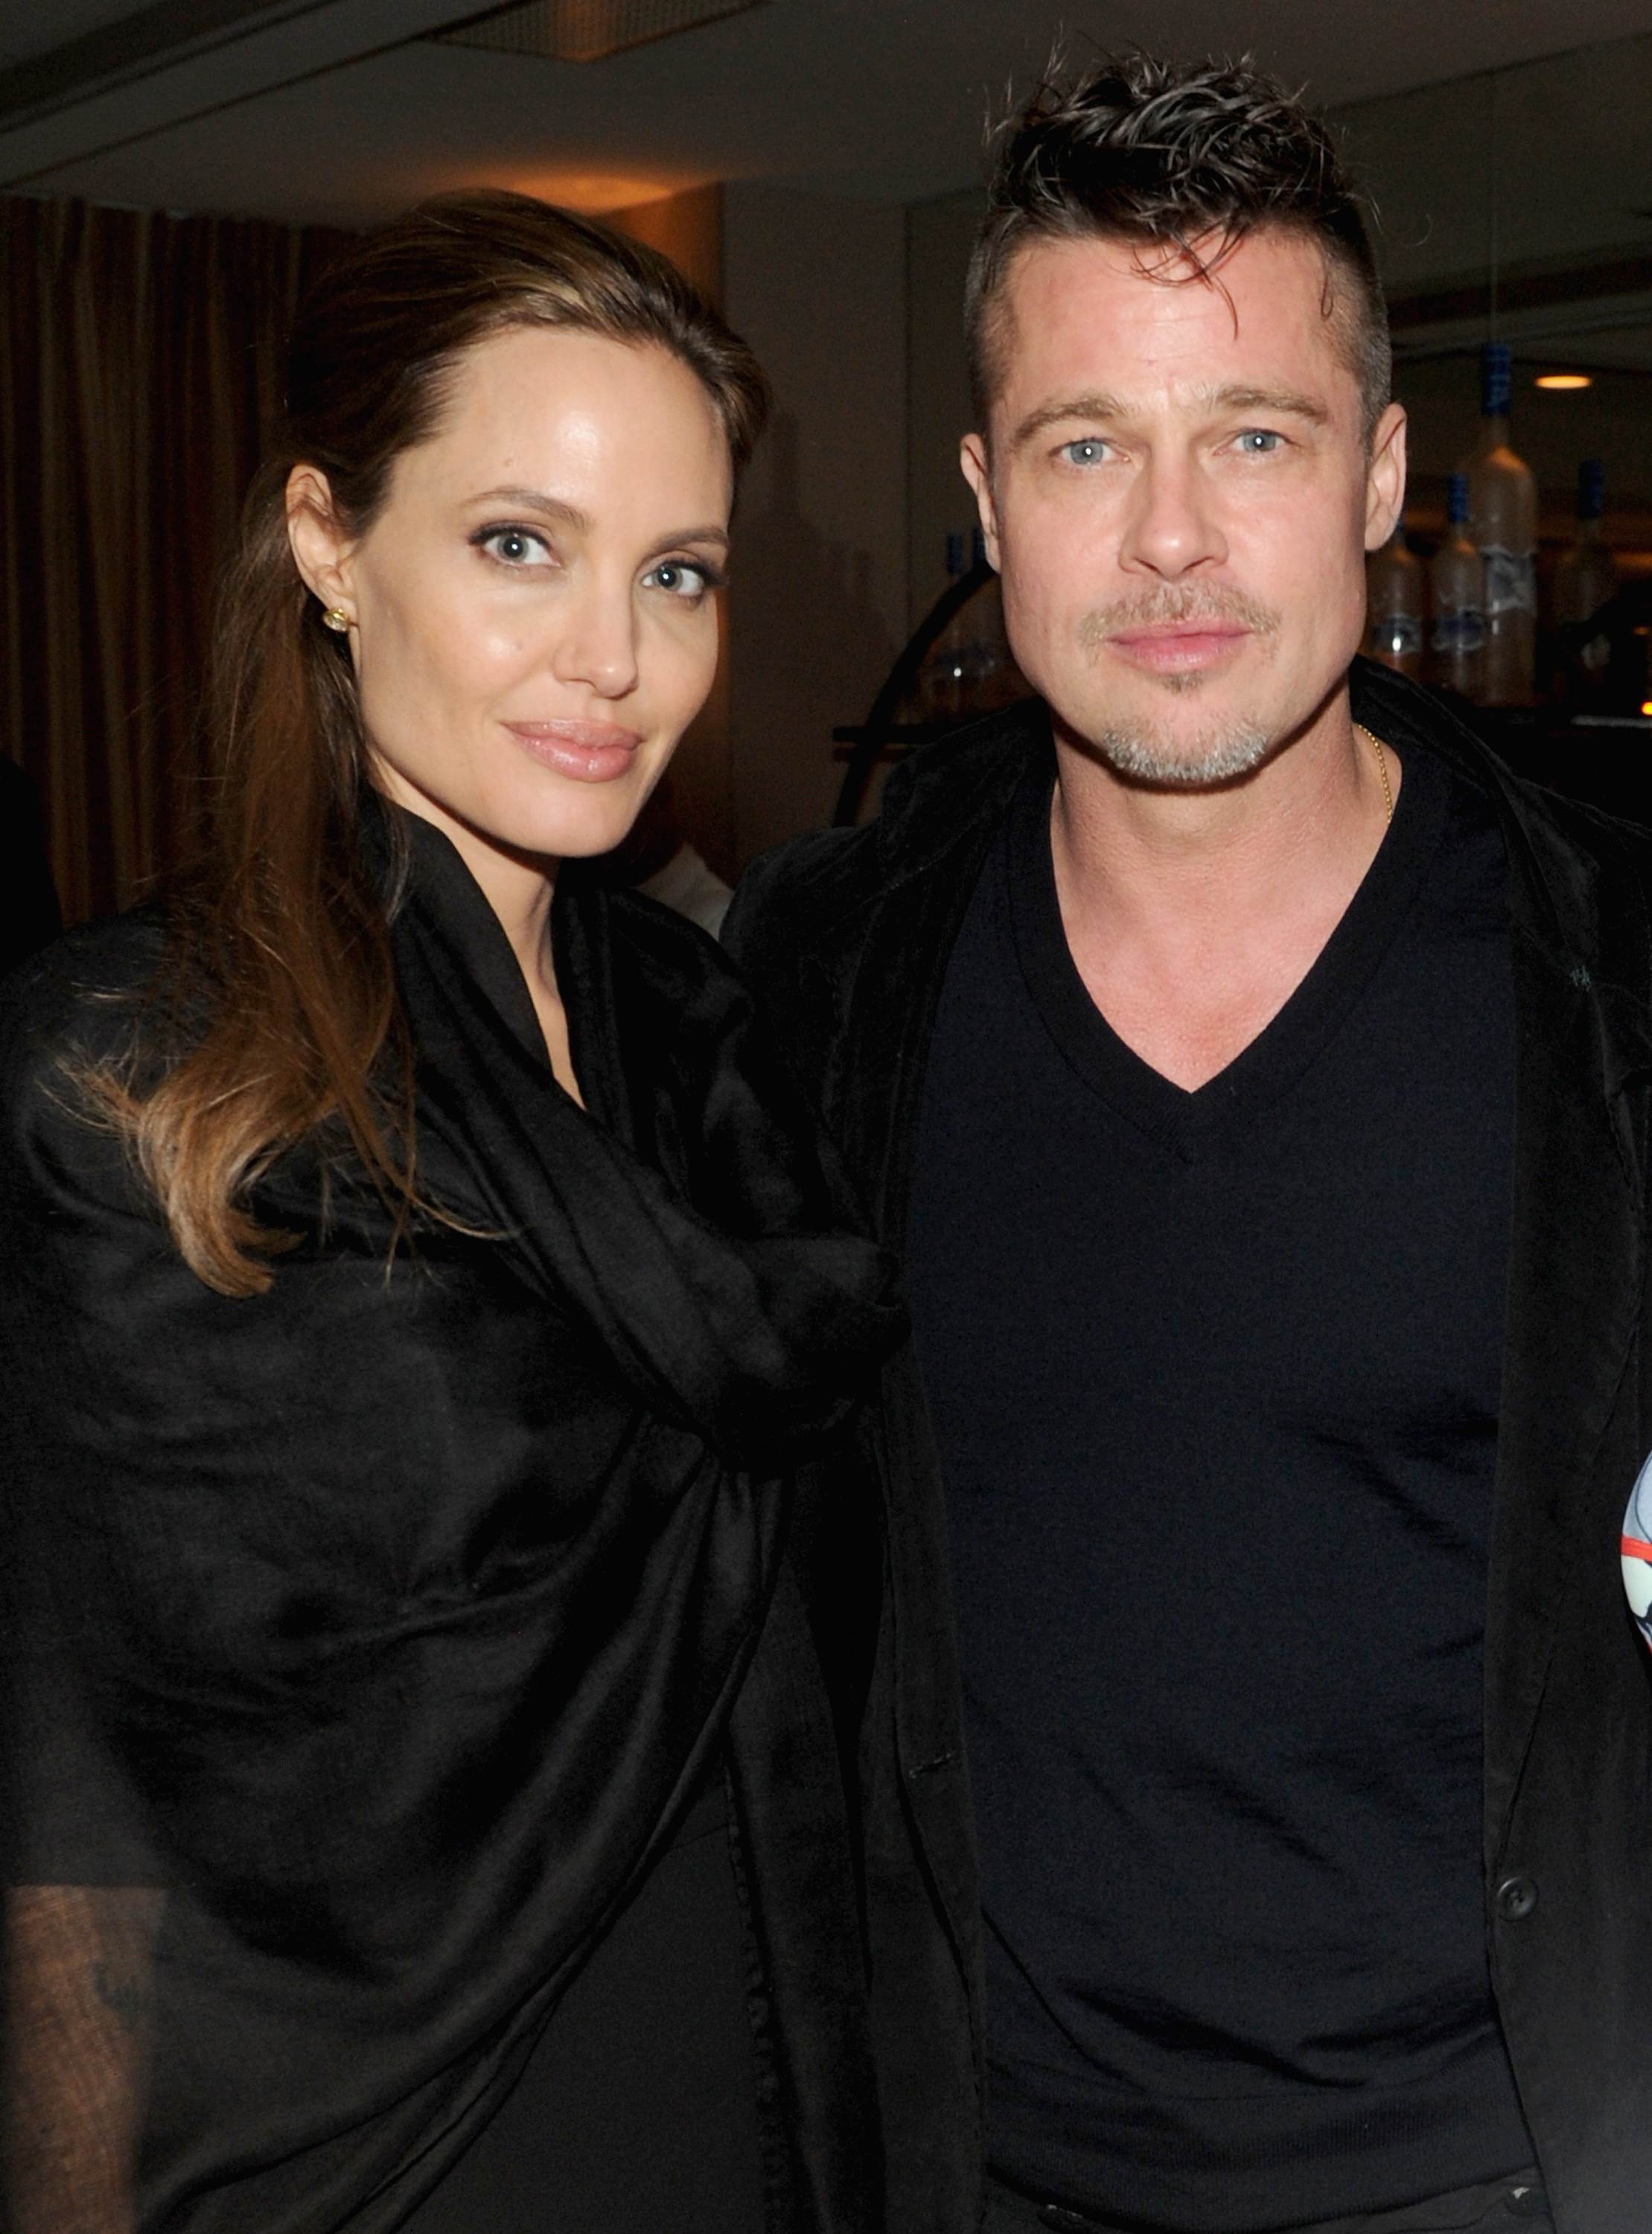 Angelina Jolie and Brad Pitt attend GREY GOOSE Hosted 12 Years A Slave Dinner at Sunset Tower